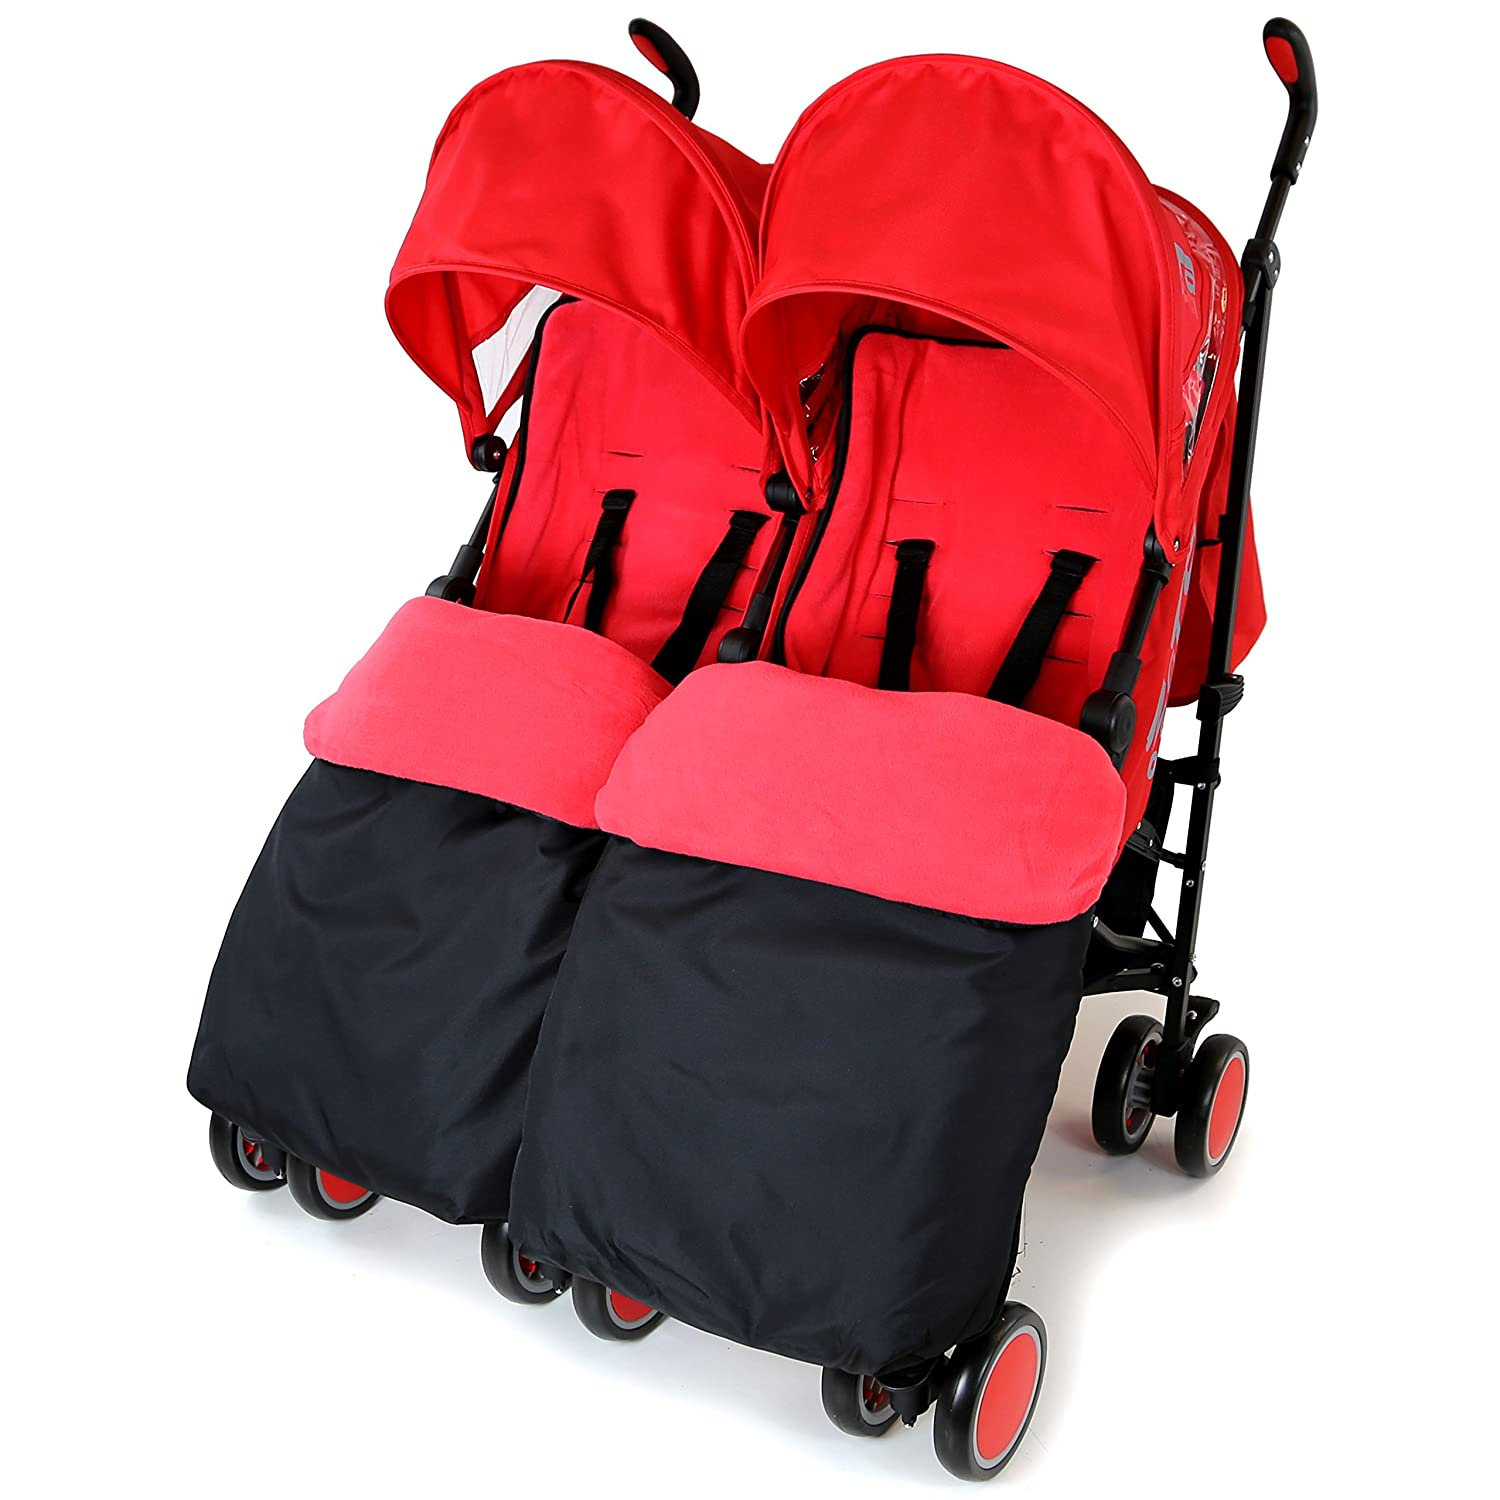 Zeta Citi TWIN Stroller Buggy Pushchair - Warm Red Double Stroller Complete With FootMuffs Baby TravelTM